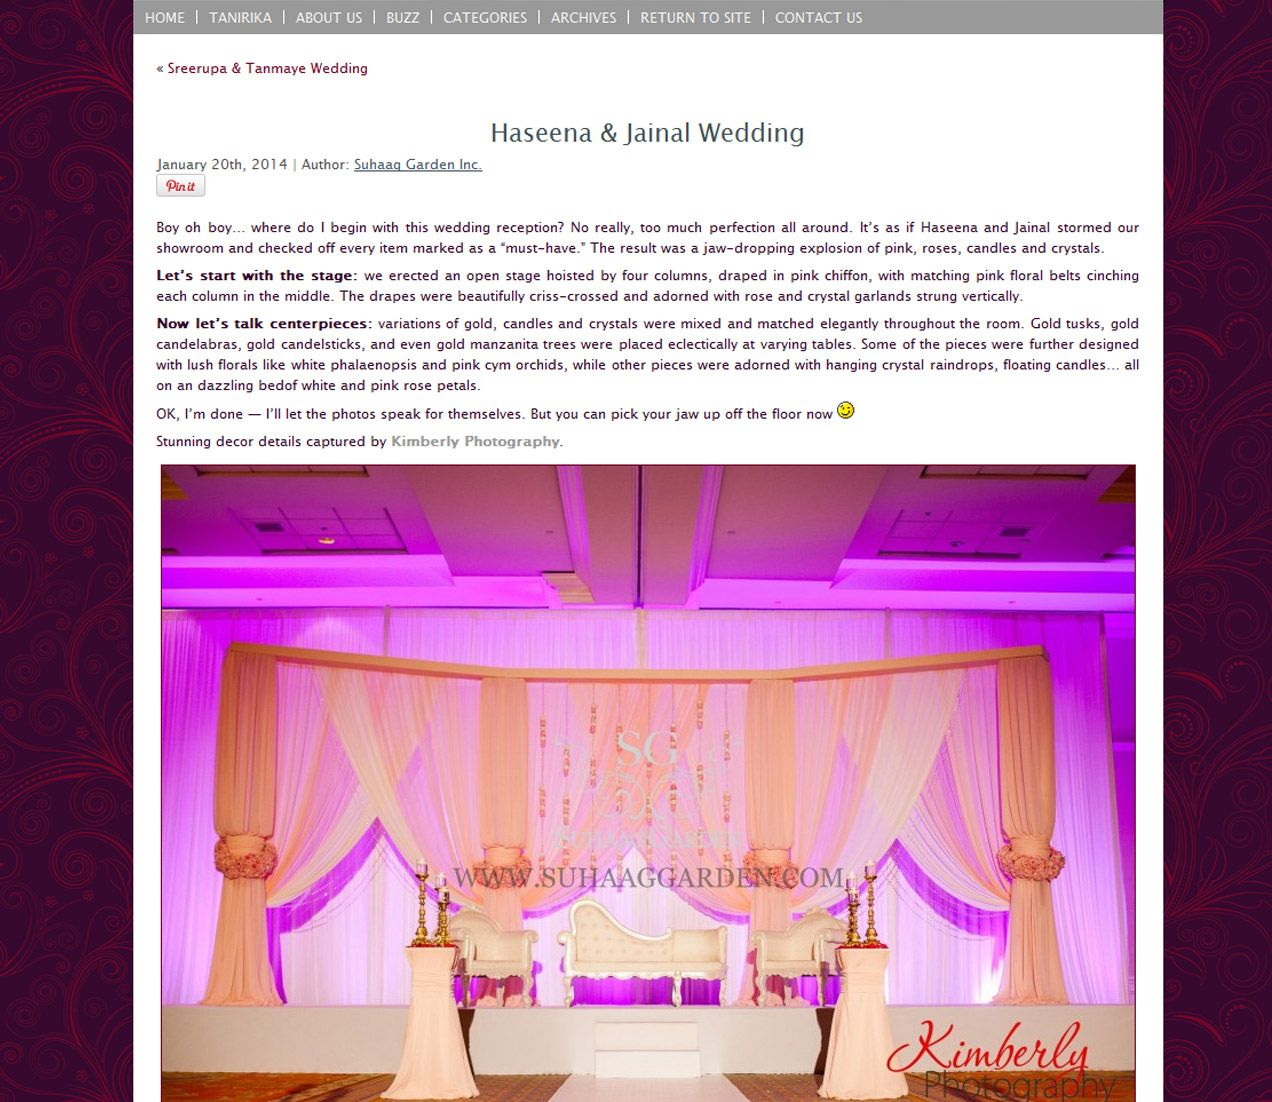 Jaw dropping design from Suhaag Gardens! Florida Indian Wedding Decor (With  images) | Florida indian wedding, Indian wedding decorations, Wedding  decorations